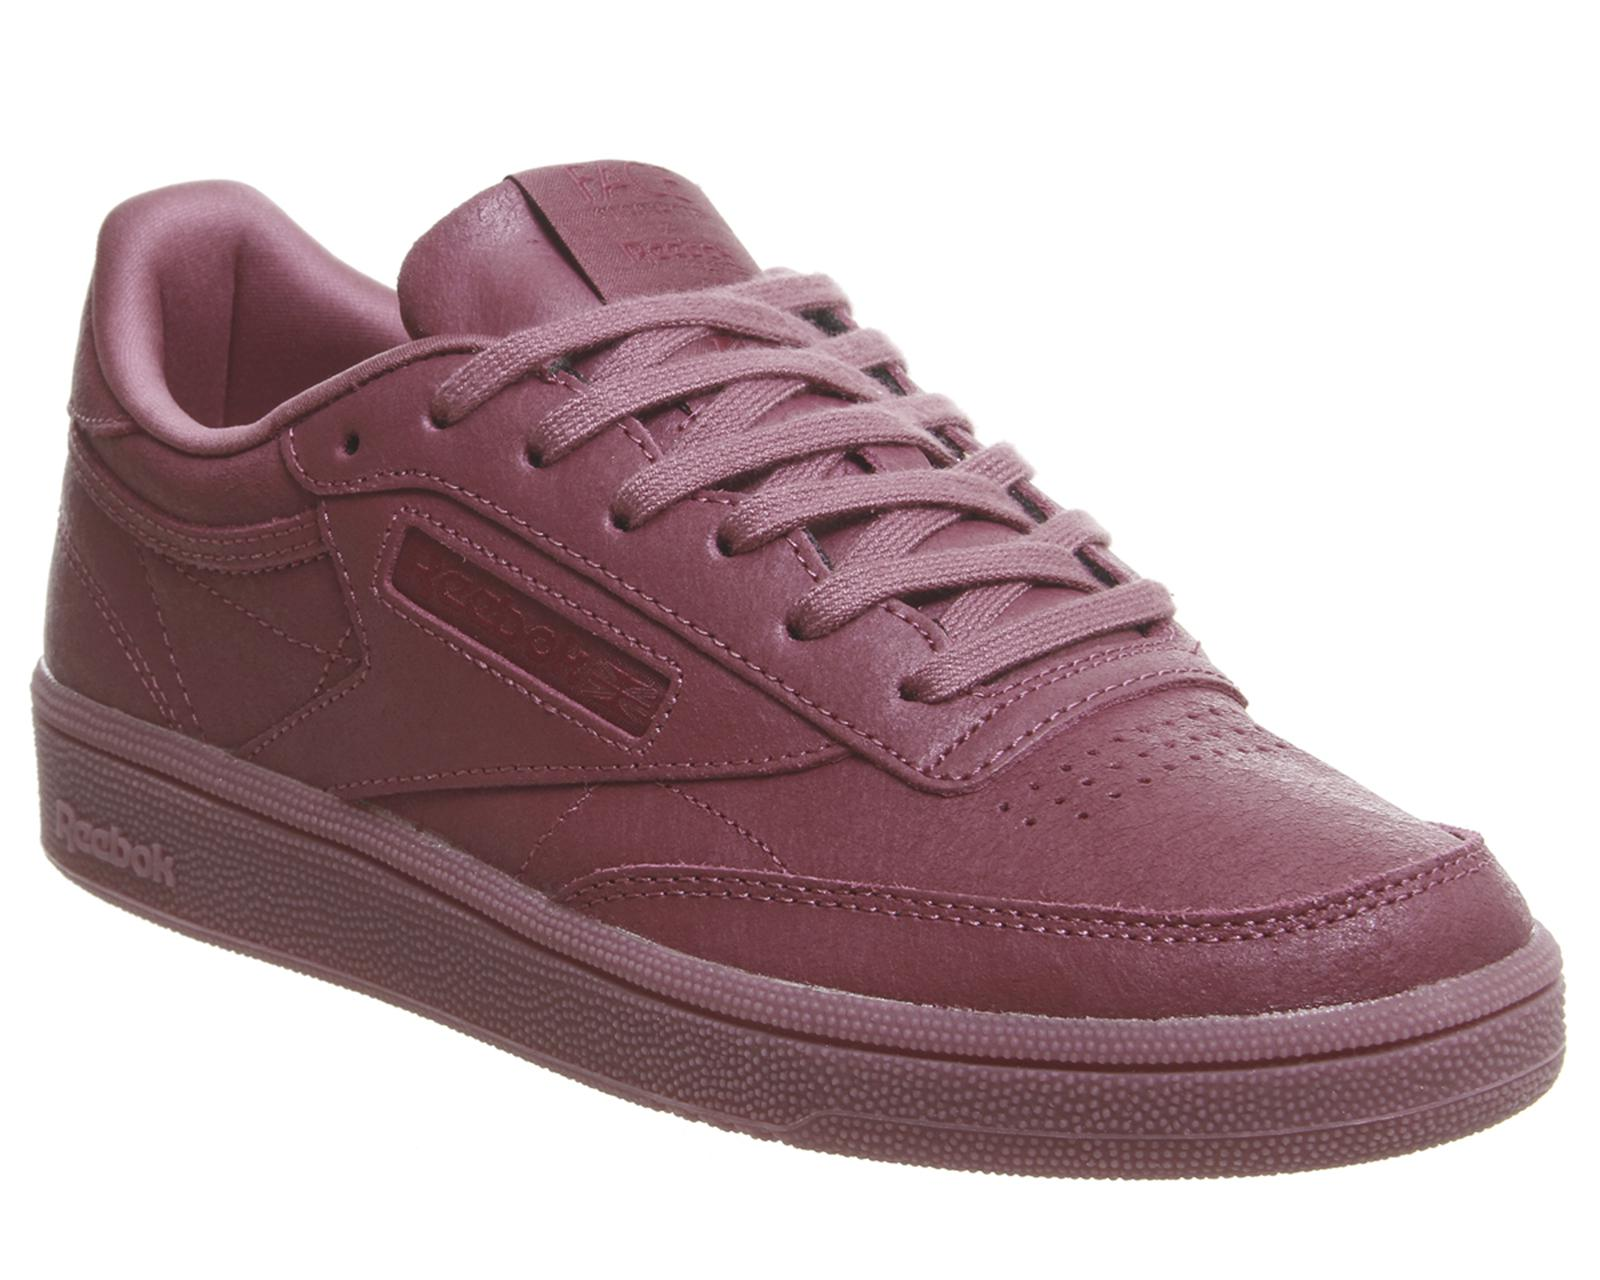 4519728fd49aa5 Reebok Club C 85 Trainers in Purple - Lyst